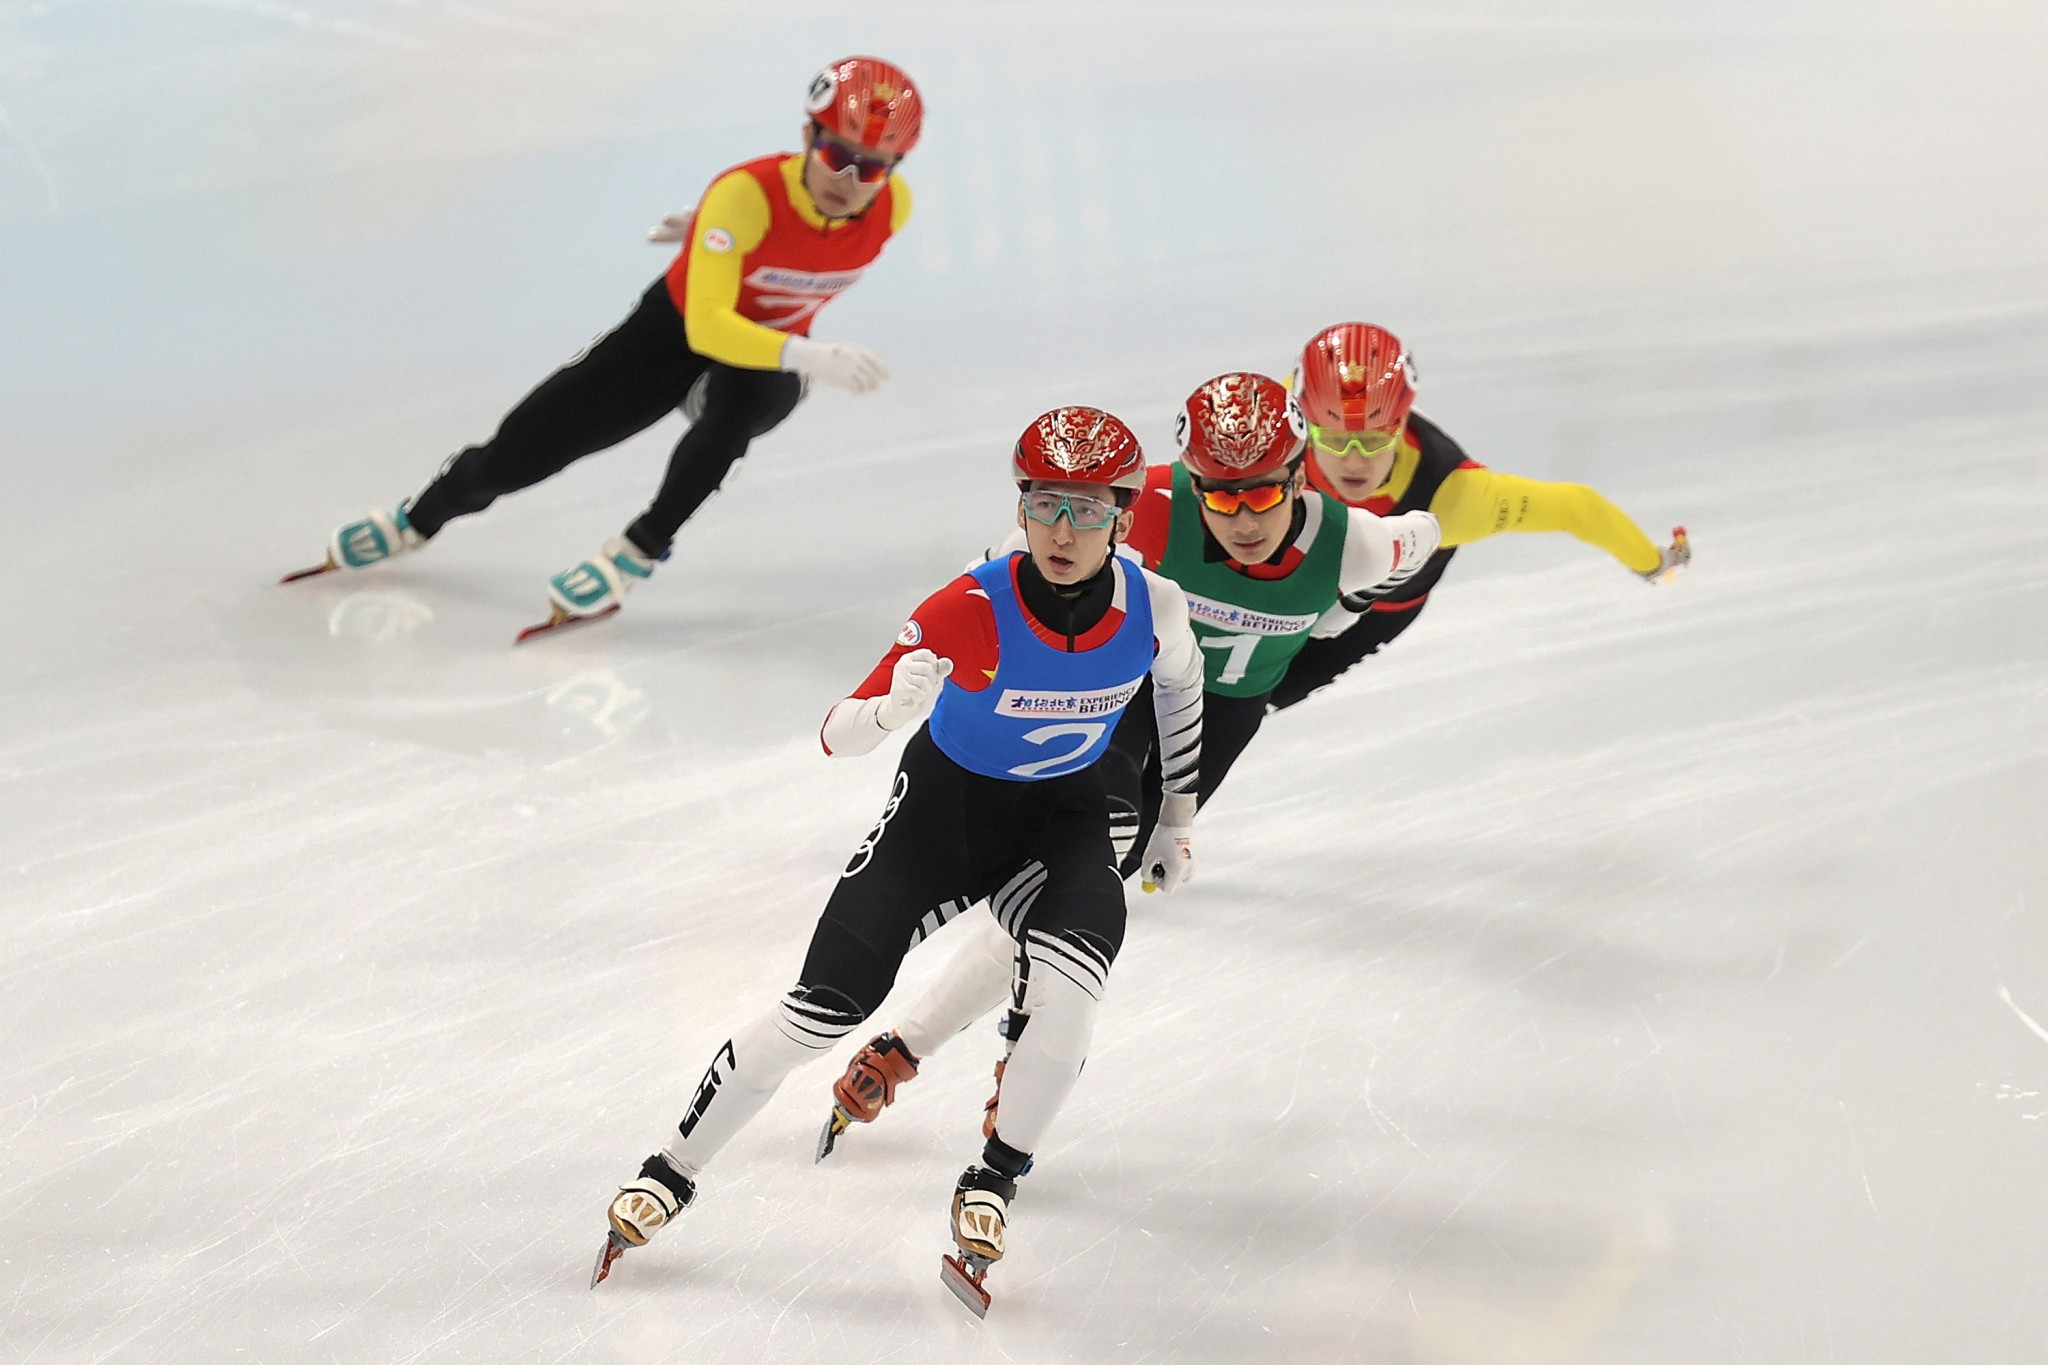 Short Track Speed Skating World Cup season to open with Beijing 2022 test event